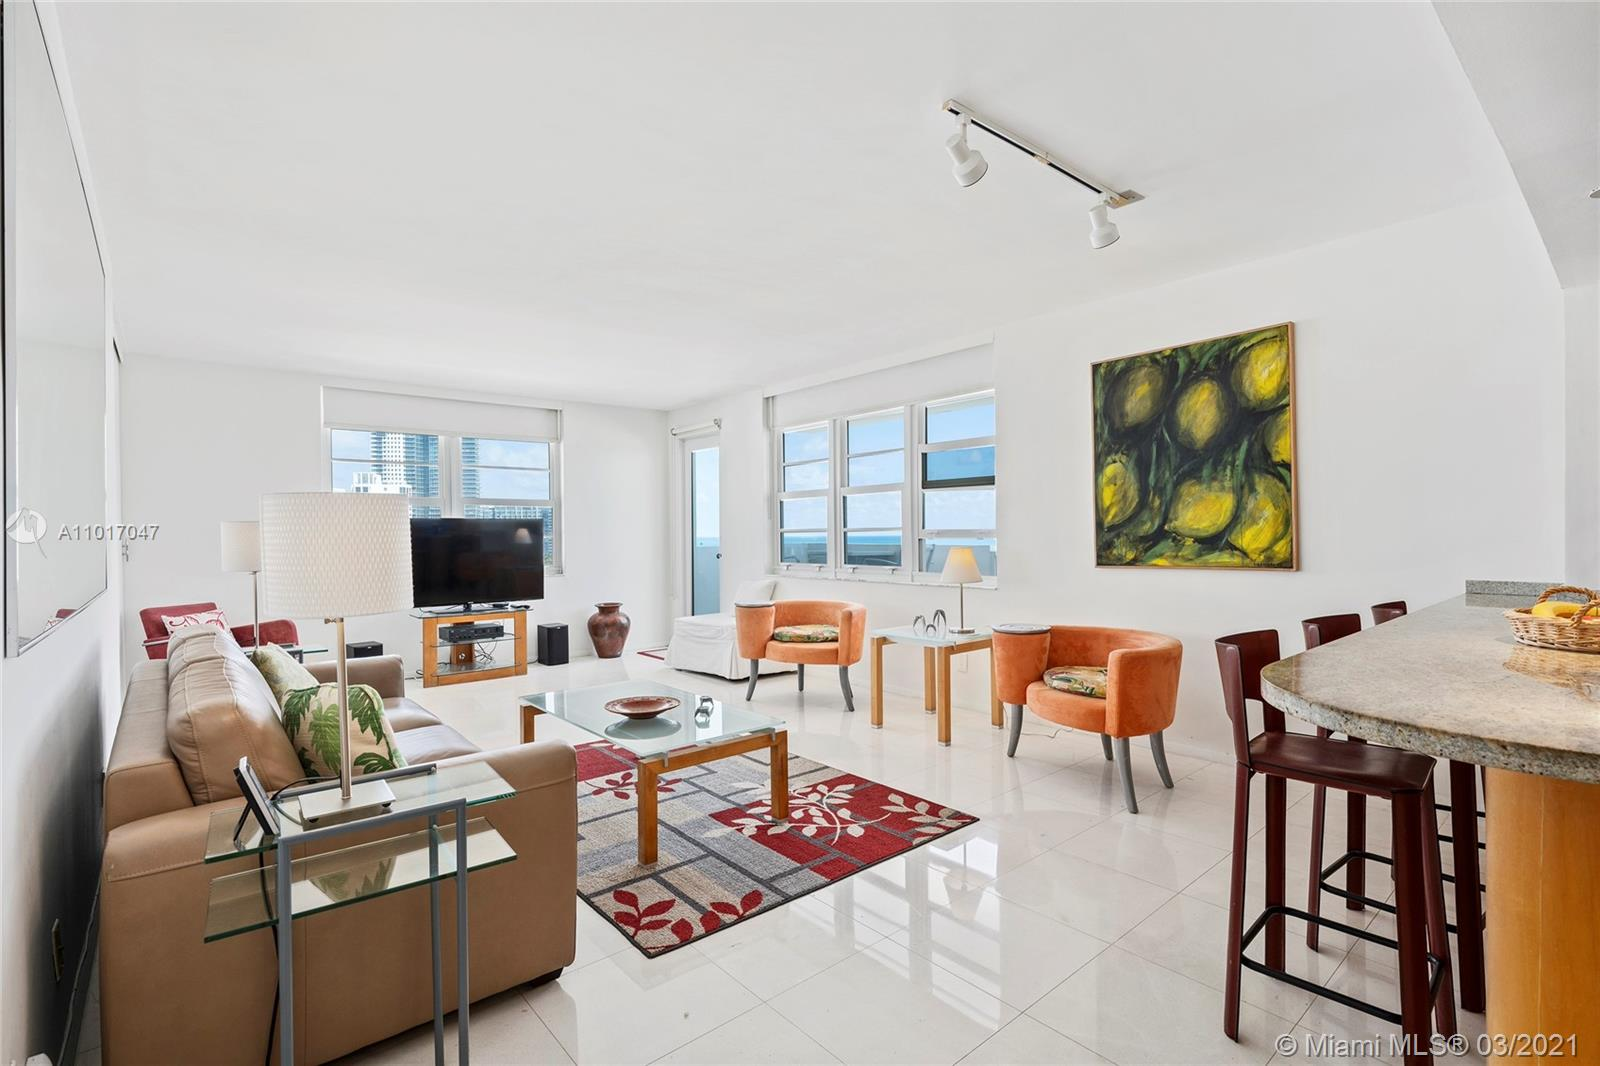 Direct oceanfront 2BD / 2 BA northeast corner with jaw-dropping ocean views. Open kitchen, sliding panel separating the middle bedroom from the living area, and unique lock-out set up that allows you to divide into two units. The Decoplage allows 30-day rentals and offers great amenities. Located across the street from Ritz Carlton and steps from Lincoln Road, Ocean drive and a plethora of shops and restaurants. Expansive balcony with some of the best views in town. Includes TWO assigned self-park parking spaces.